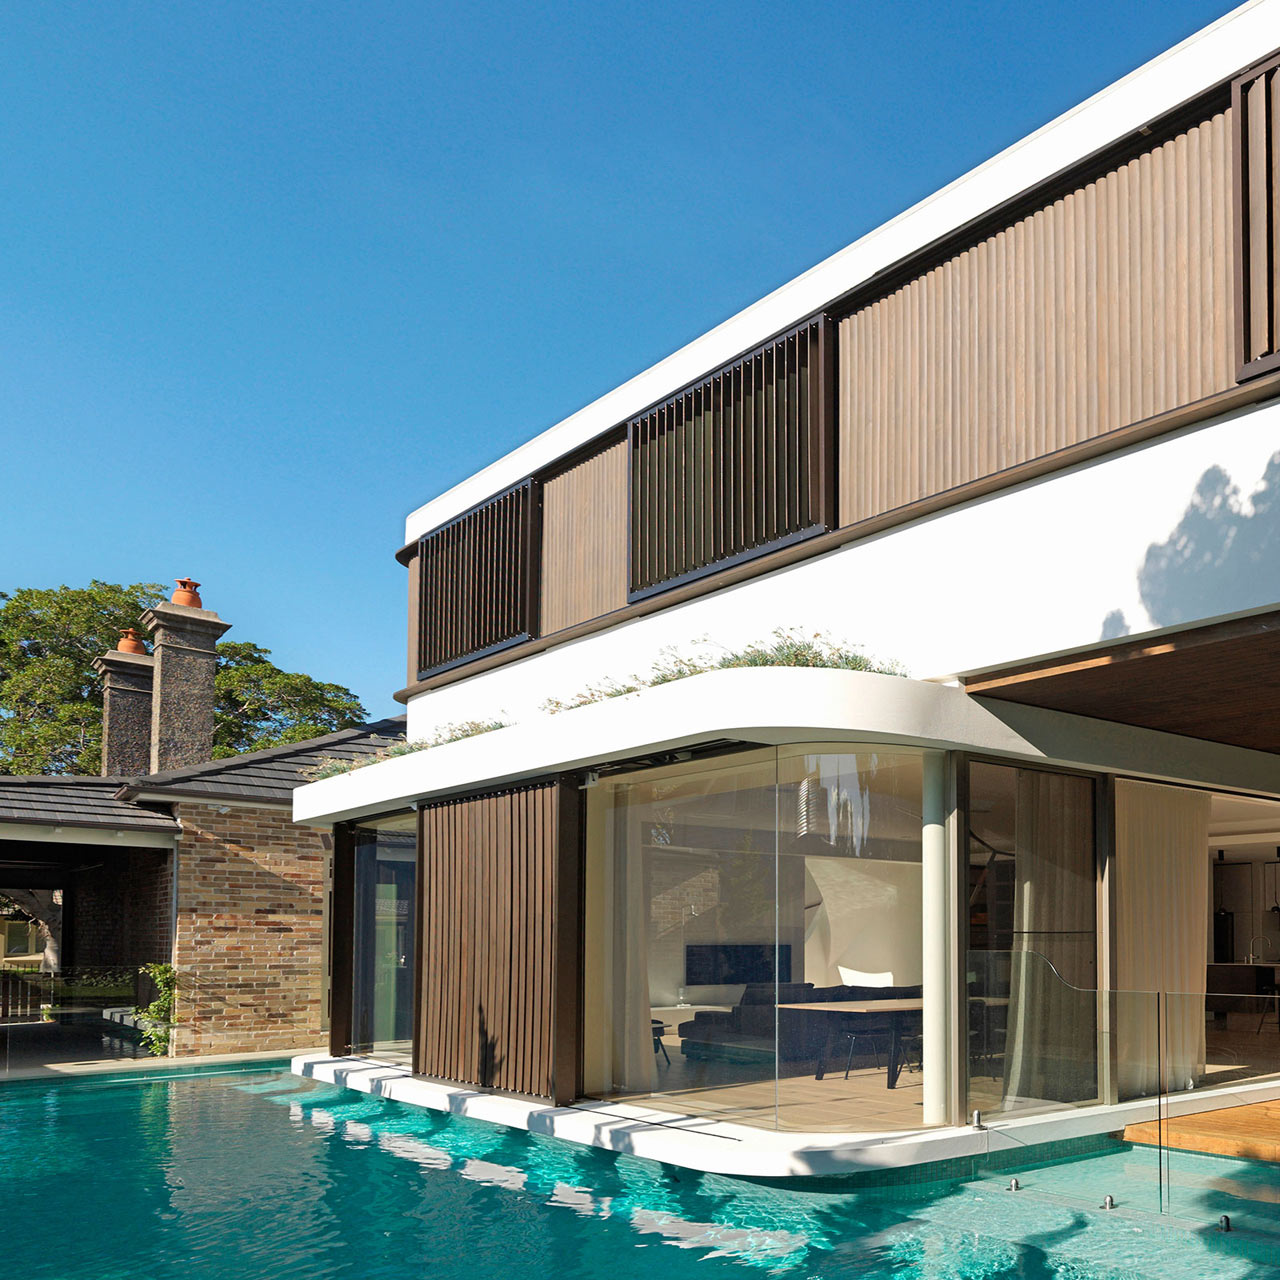 Modern House Plans With Pool Architecture A Modern House Design With An Impressive Swimming